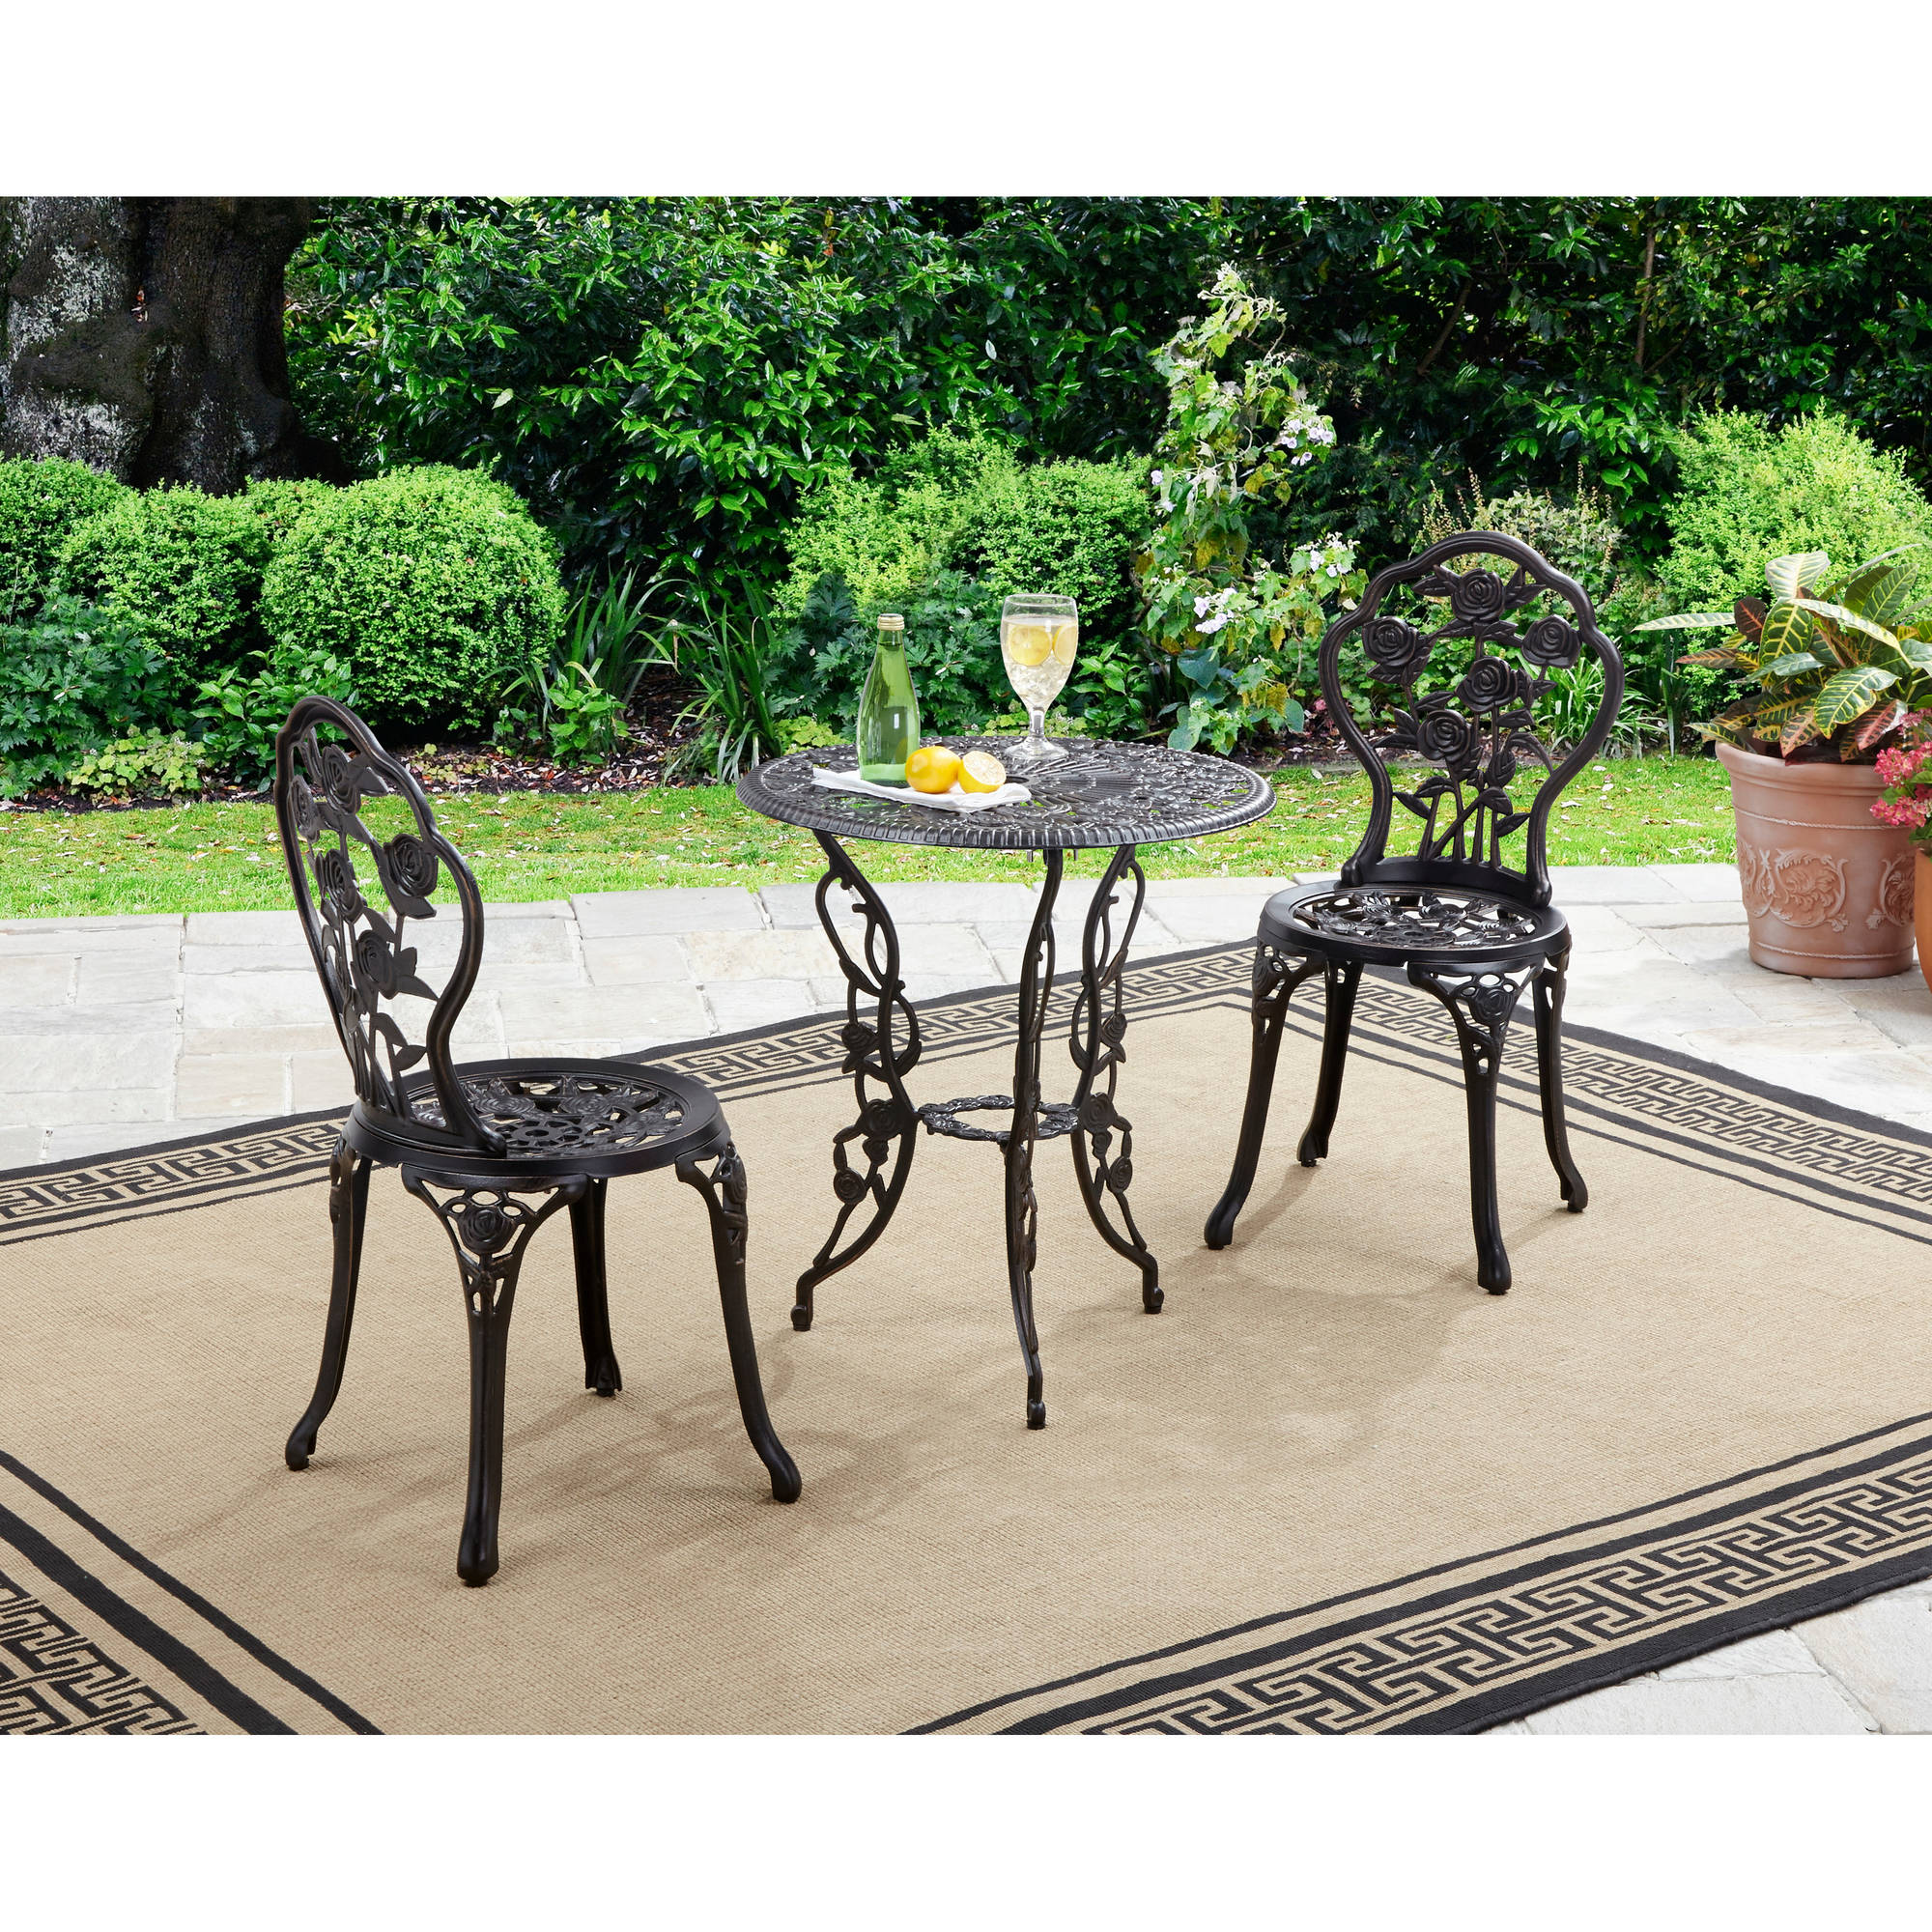 patio bistro set better homes and gardens rose 3-piece bistro set WDYTAEQ